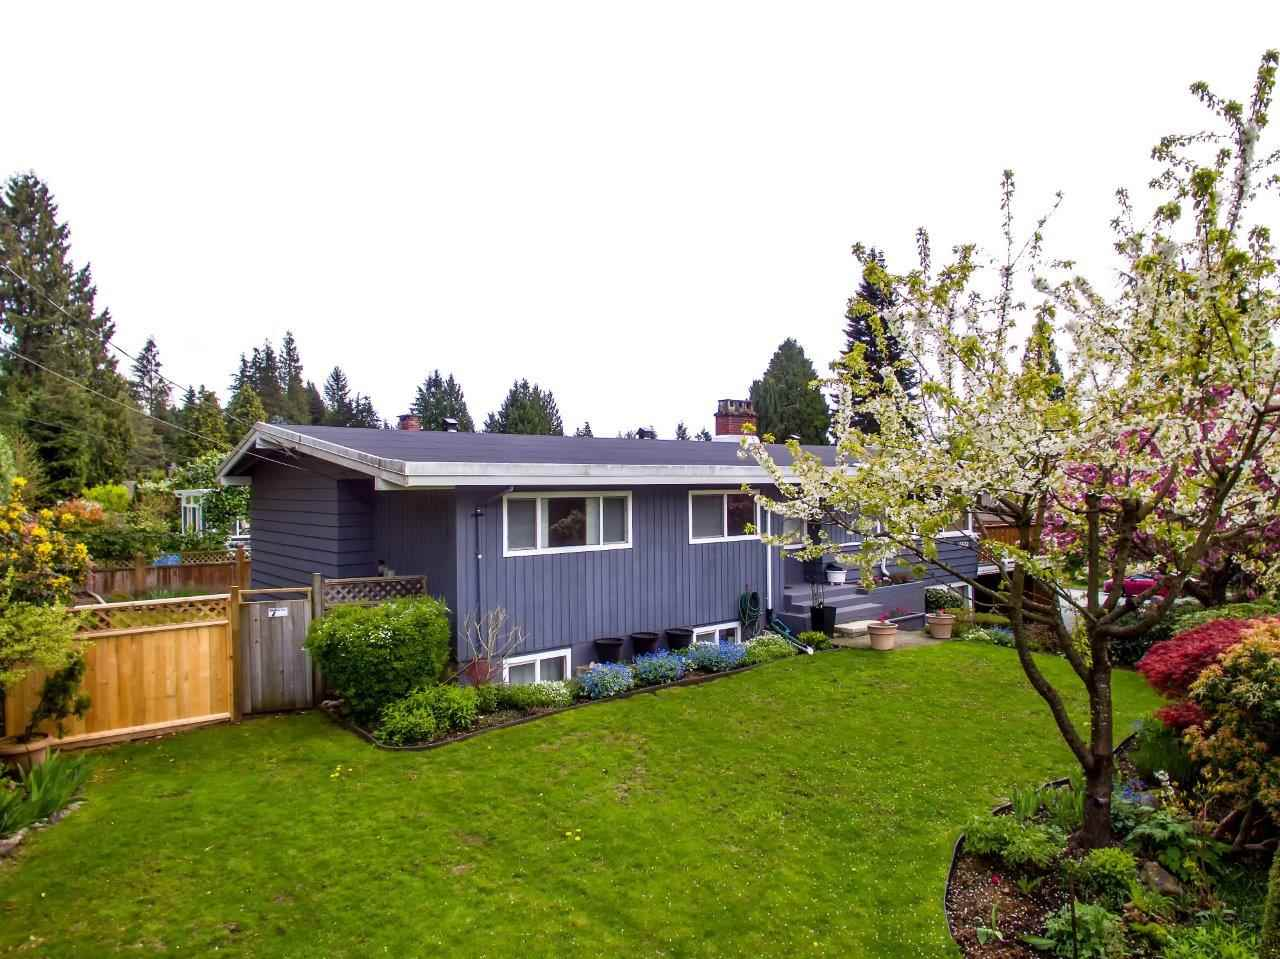 Photo 13: 3532 DELBROOK Avenue in North Vancouver: Delbrook House for sale : MLS(r) # R2163103